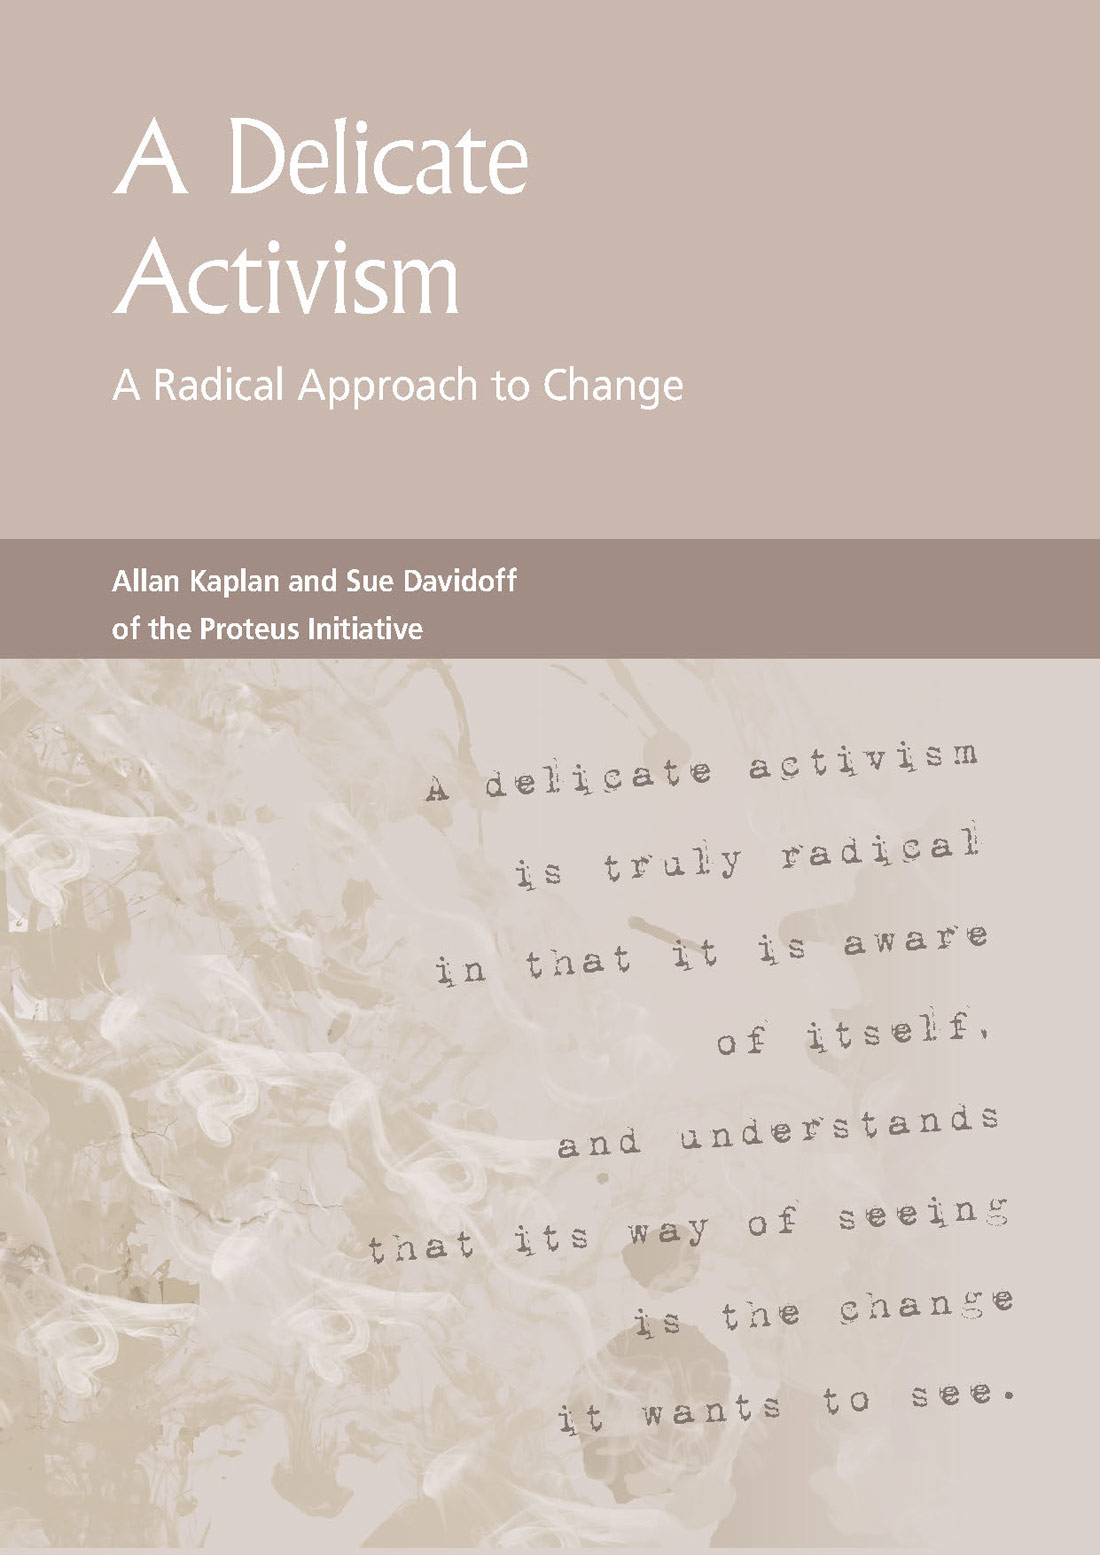 Delicate-Activism-Ebook-cover-3